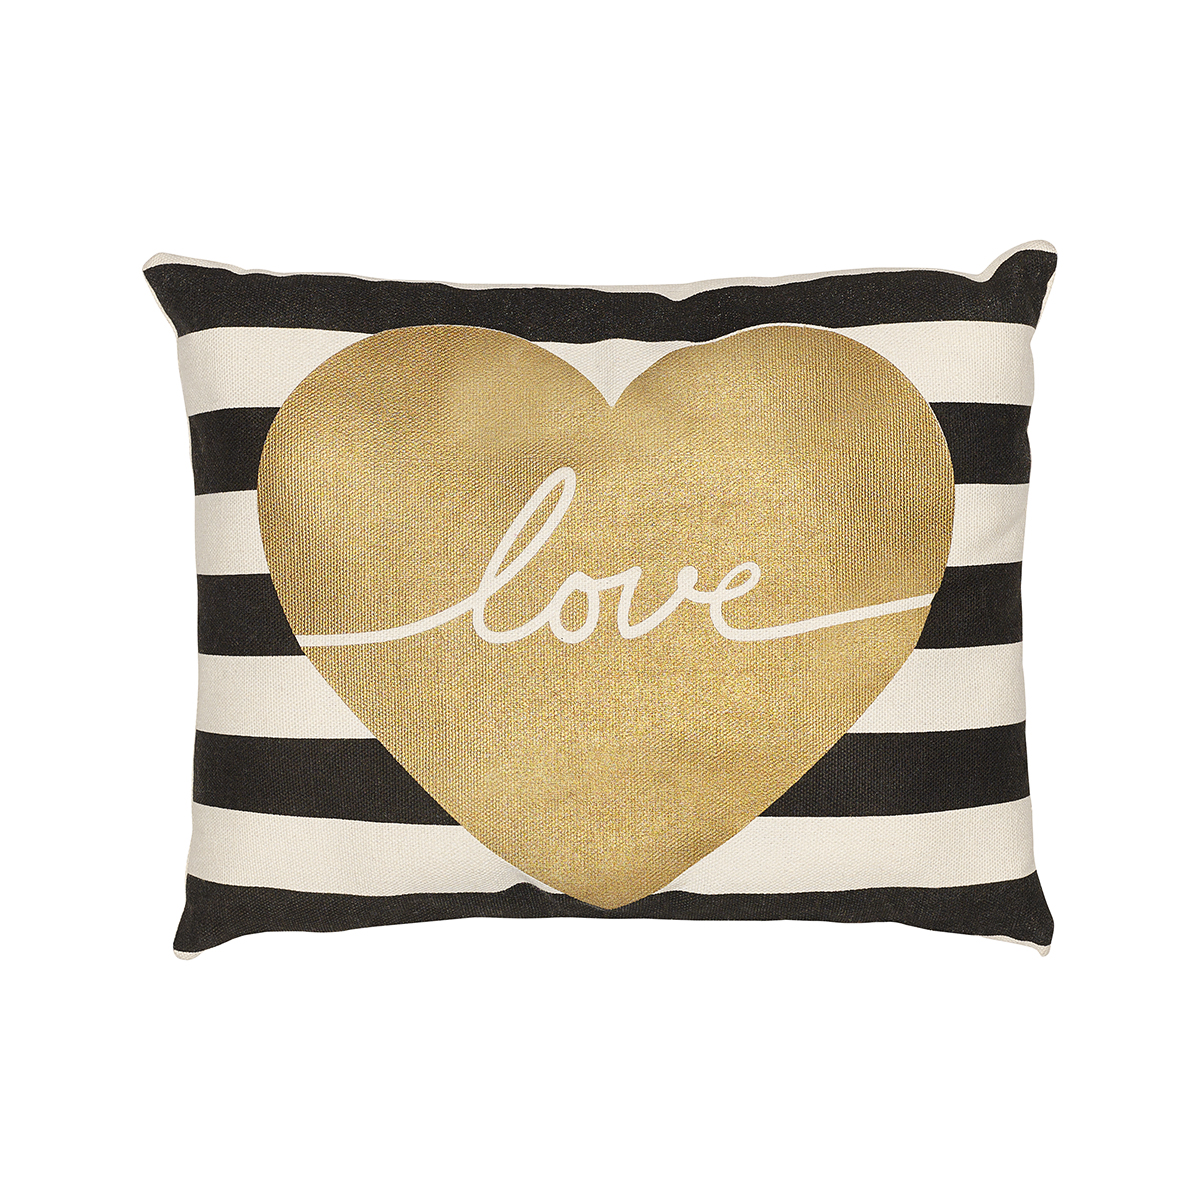 Photo Throw Pillow Gifts : LoveStriped Throw Pillow - Wedding Gifts